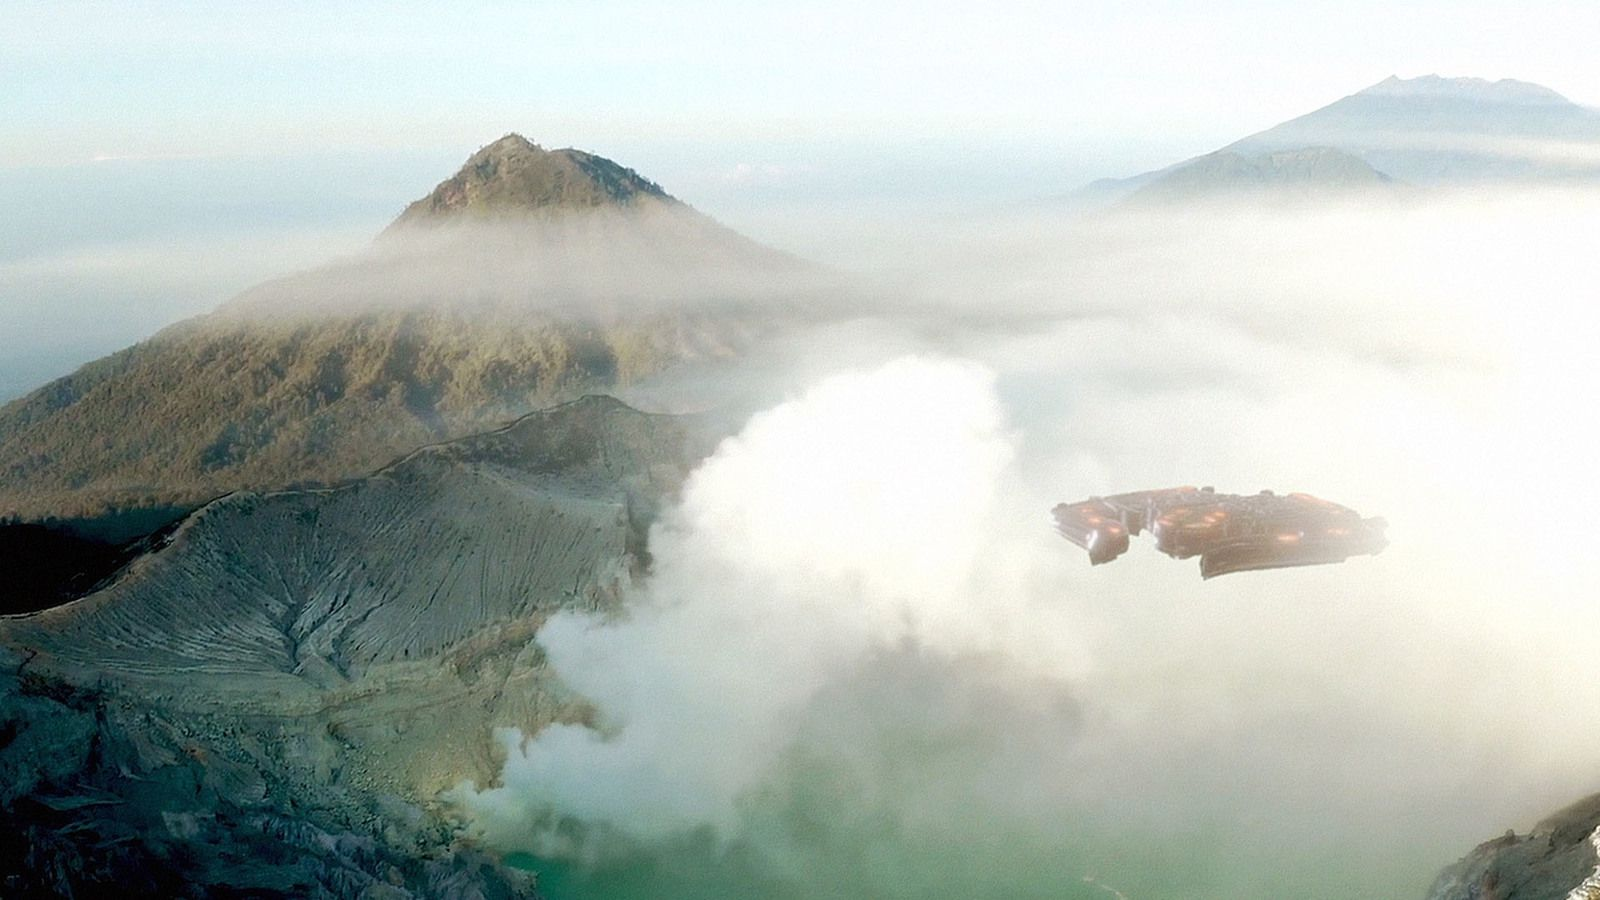 👽 Strange UFO Spotted Over Volcano Crater in New Zealand